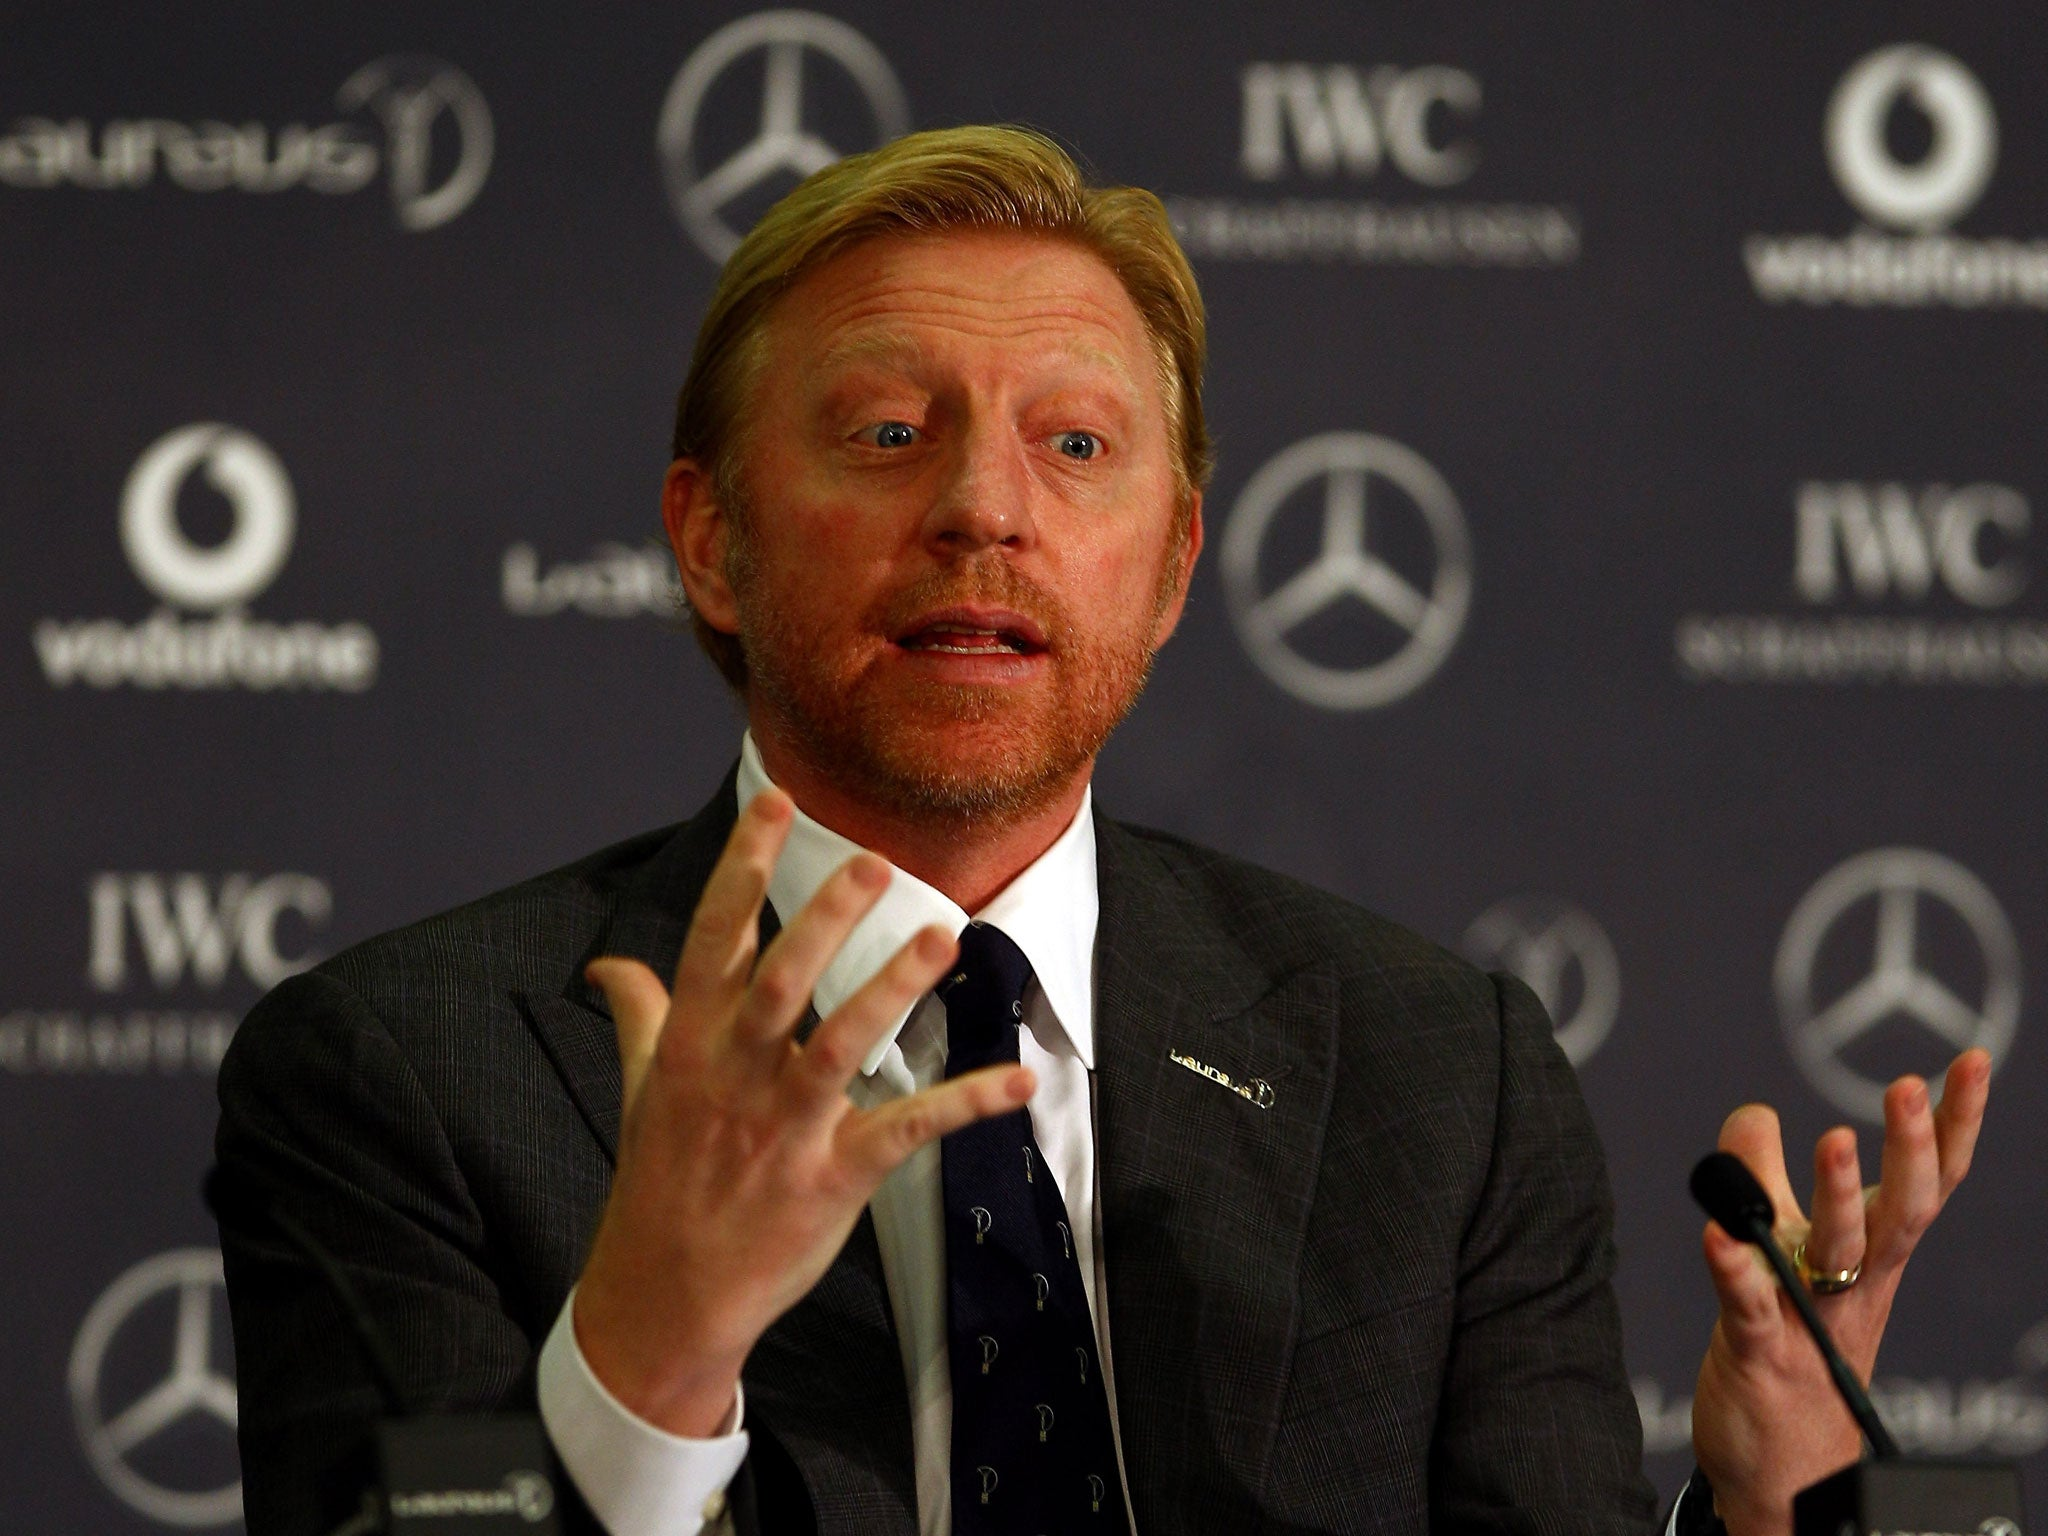 Boris Becker claims diplomatic immunity to avoid bankruptcy